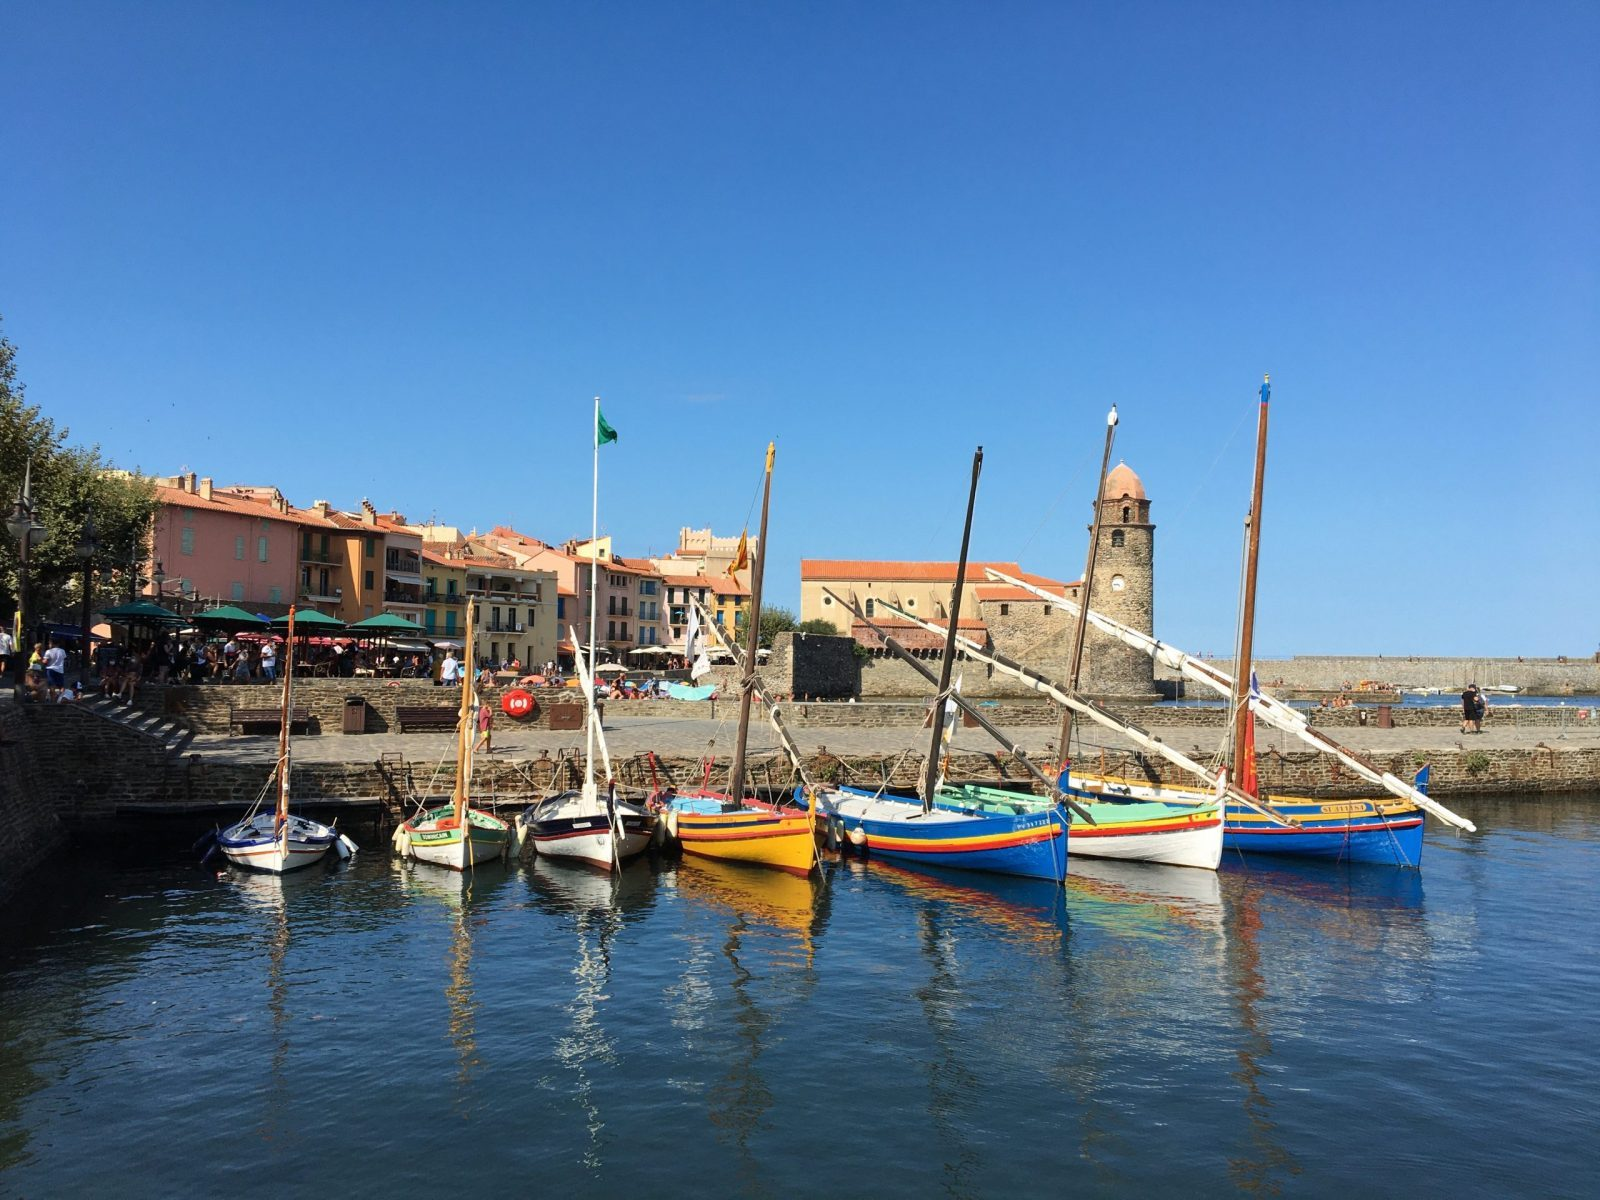 Collioure sketching weekend | Workshops, holidays and online courses to develop your sketching and watercolour skills whilst learning more about French life and culture.